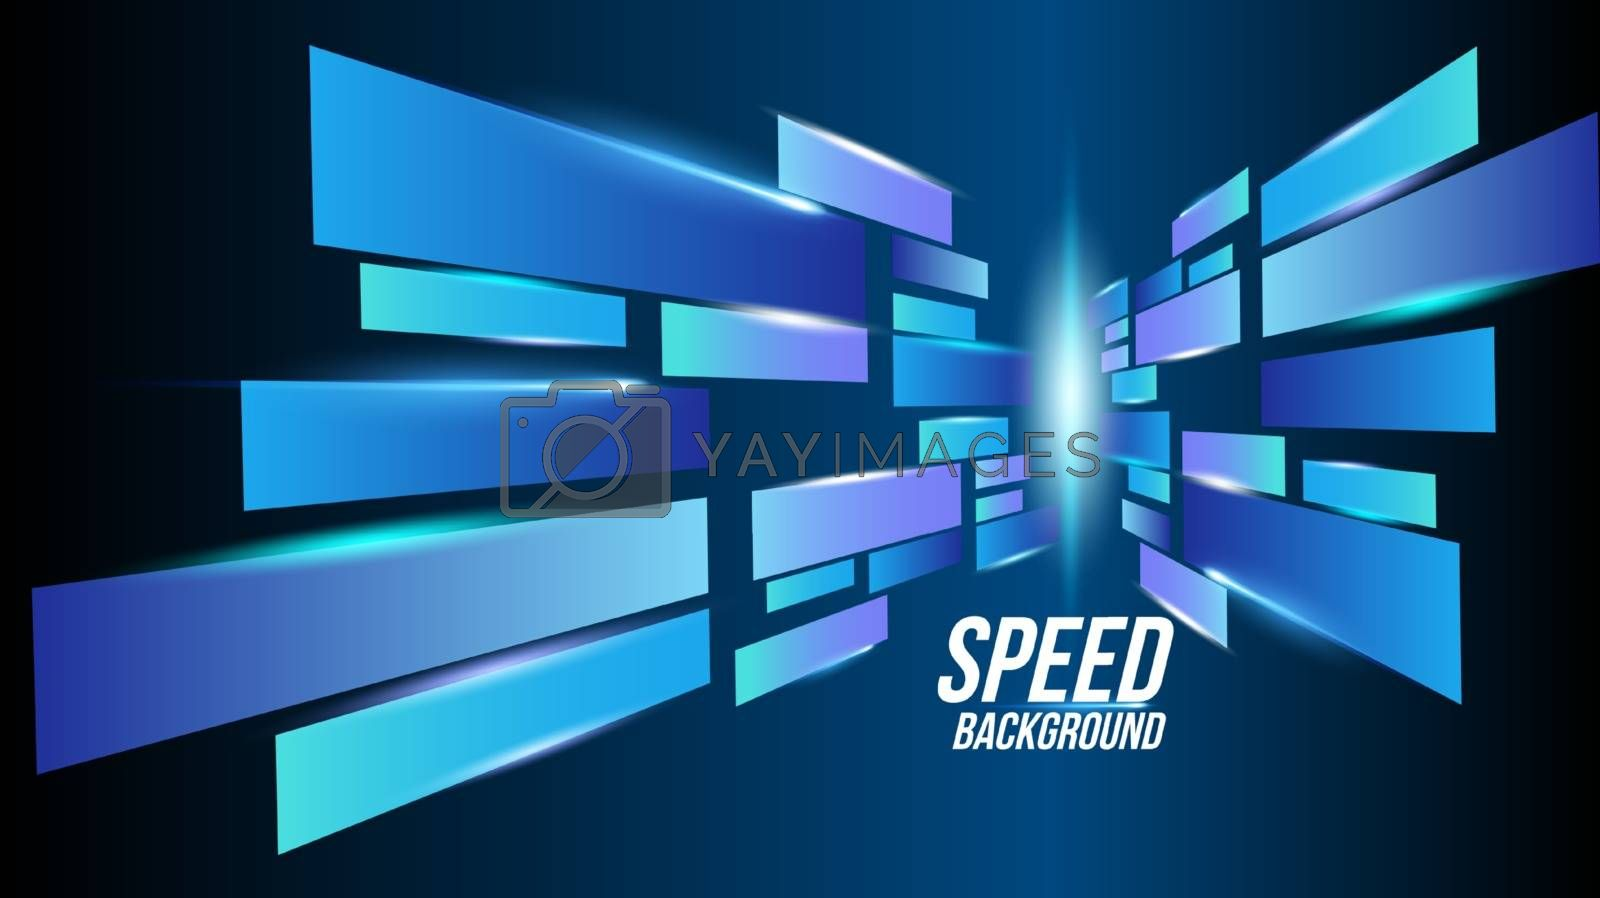 Abstract background technology high speed racing for sports by Zeedoherty